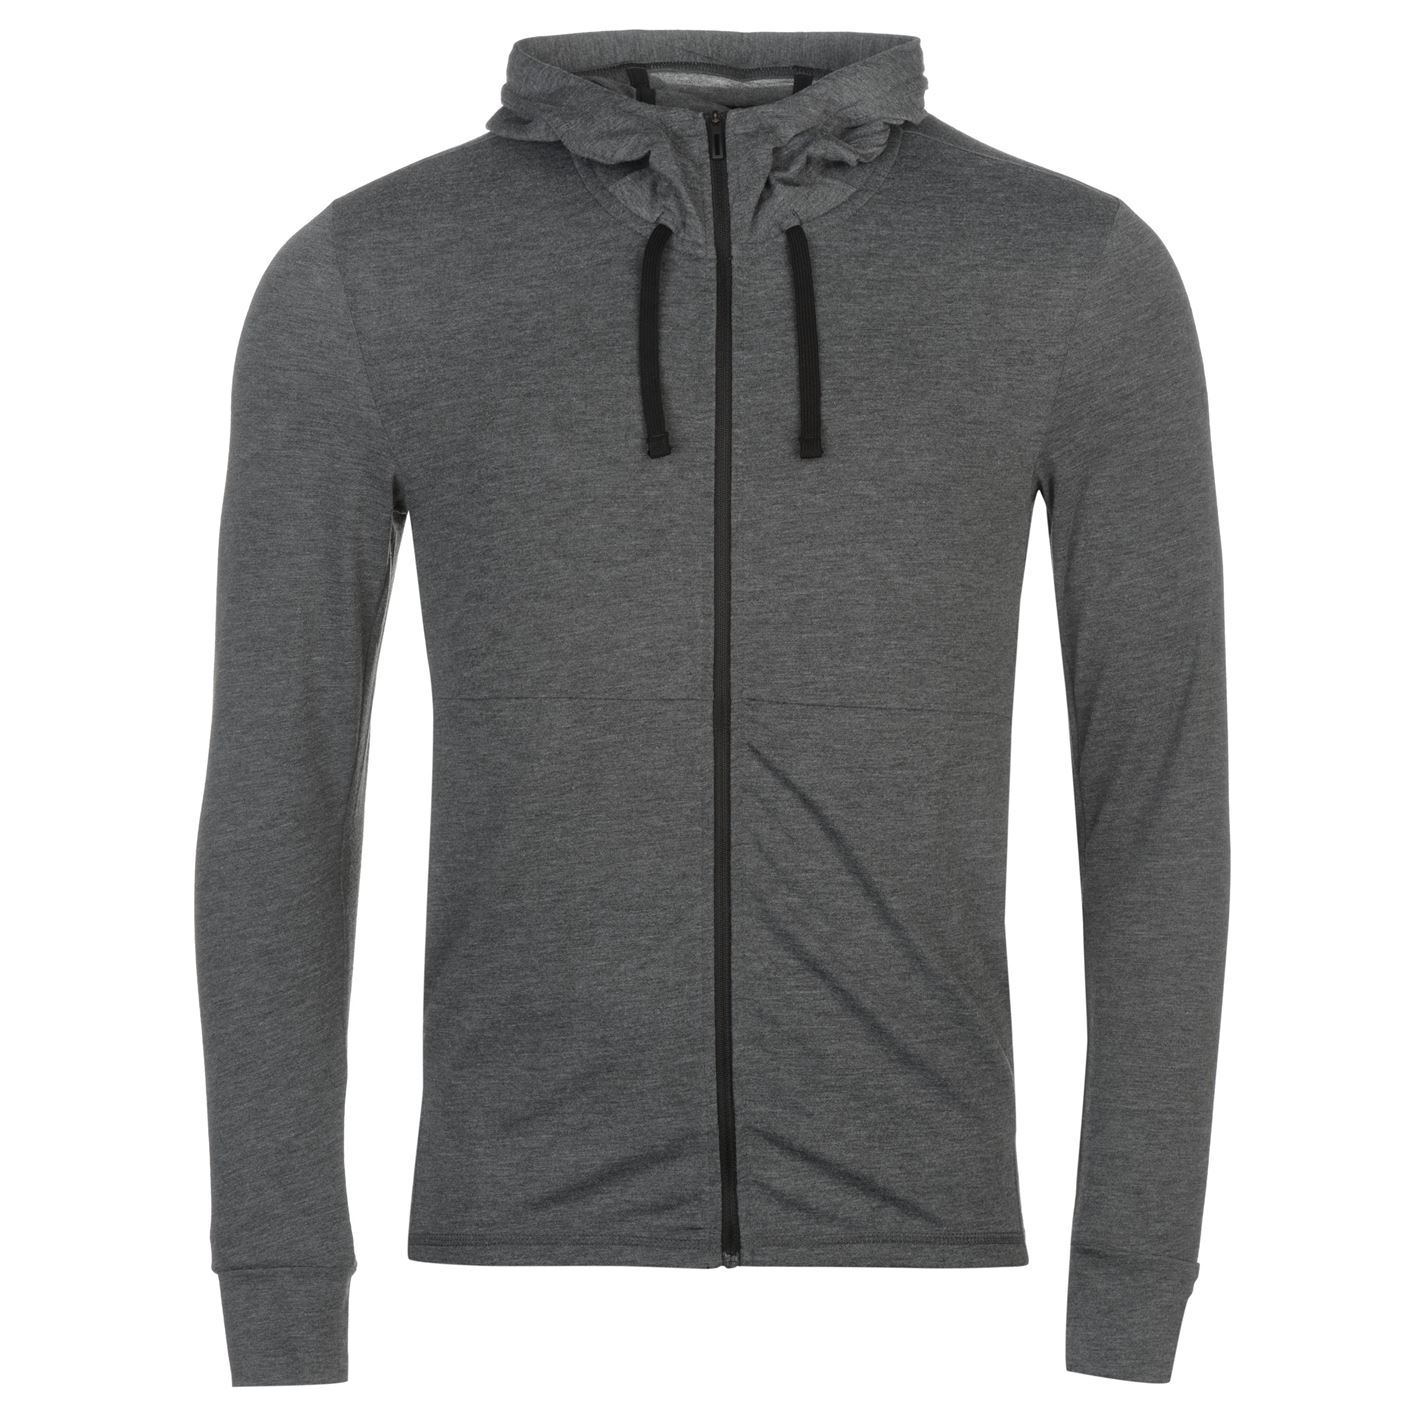 reputable site 8b844 979a6 adidas Workout FZ Hoody Lite Mens Gents Zip Hoodie Hooded Top Full Length  Sleeve Grey M. About this product. Picture 1 of 2 Picture 2 of 2